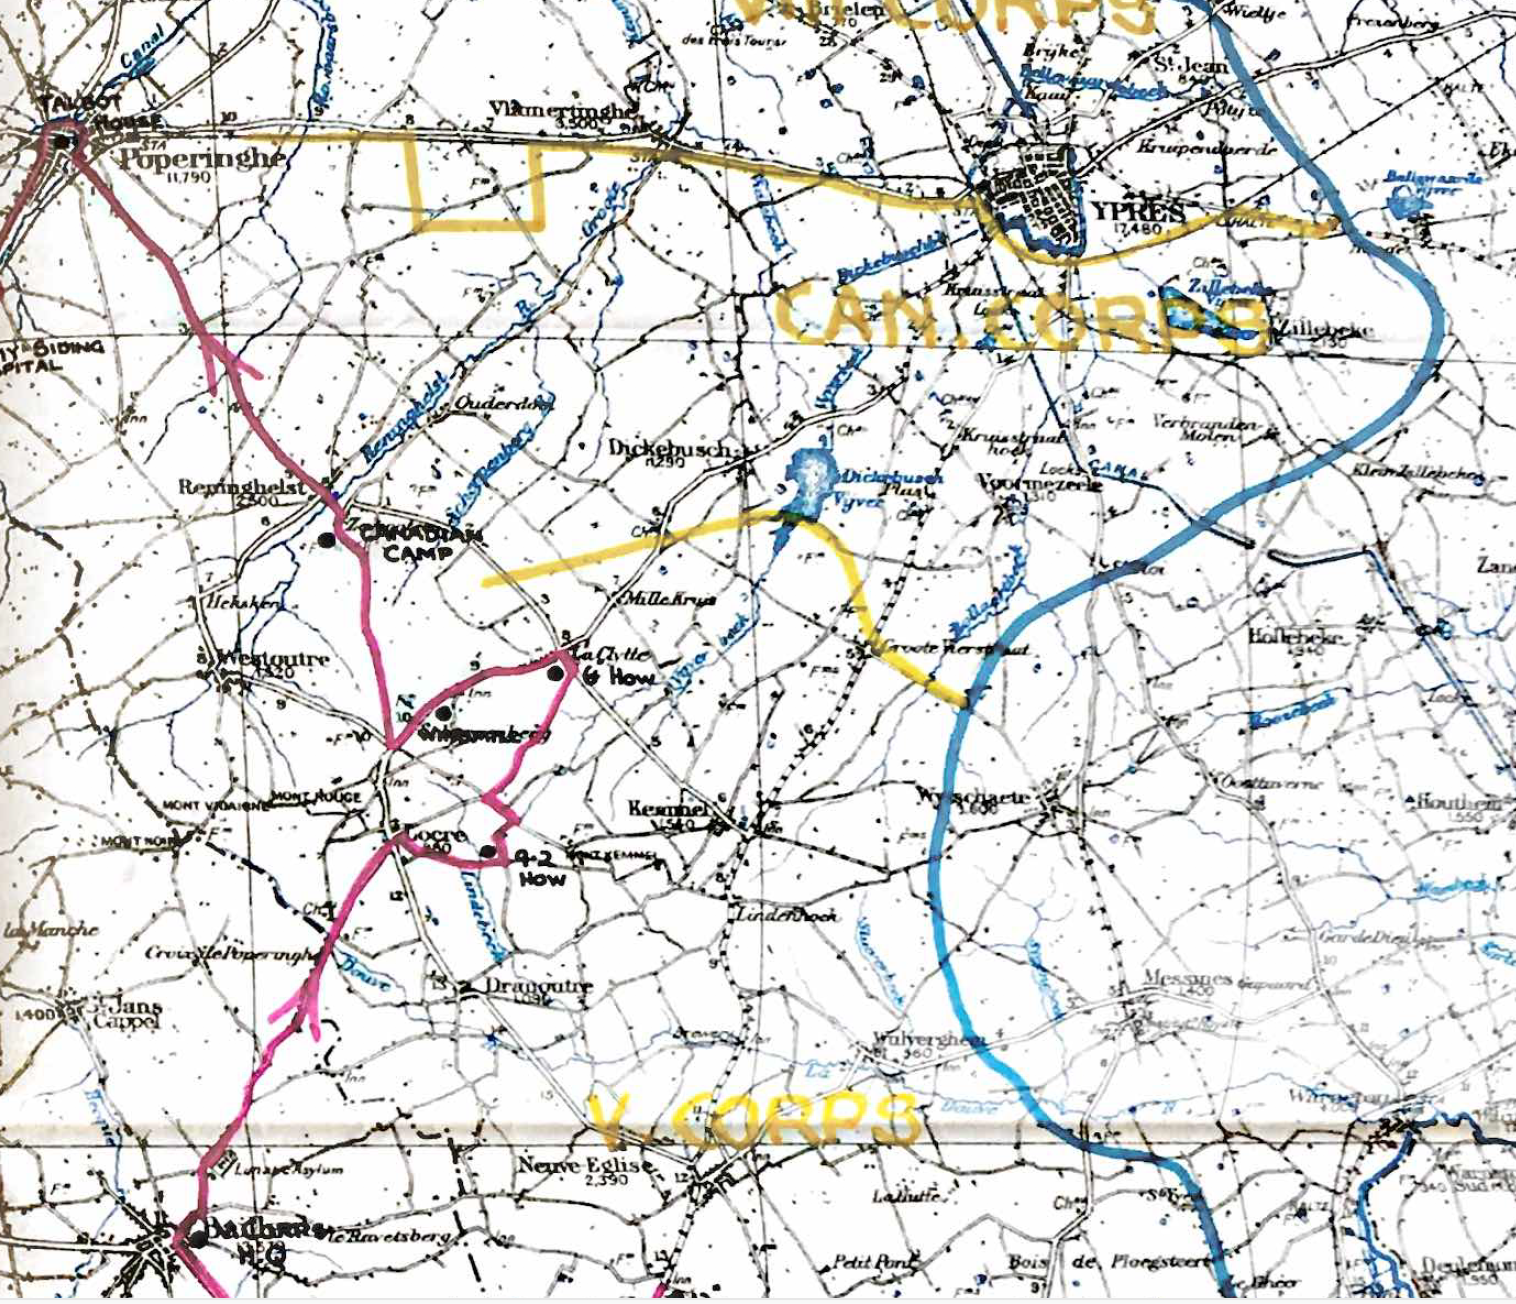 Map showing the whole scope of Nicholls' active service at the Front. He joined the 31st east of Kemmel (centre of map where violet and blue lines are closest. His war ended near Zillebeke (at end of yellow CANCORPS on map) 3 months later. In between he got to know places like Bailleul, St Jans Cappel, Locre, Westoutre, Renninghelst, La Clytte, and Dickebusch.